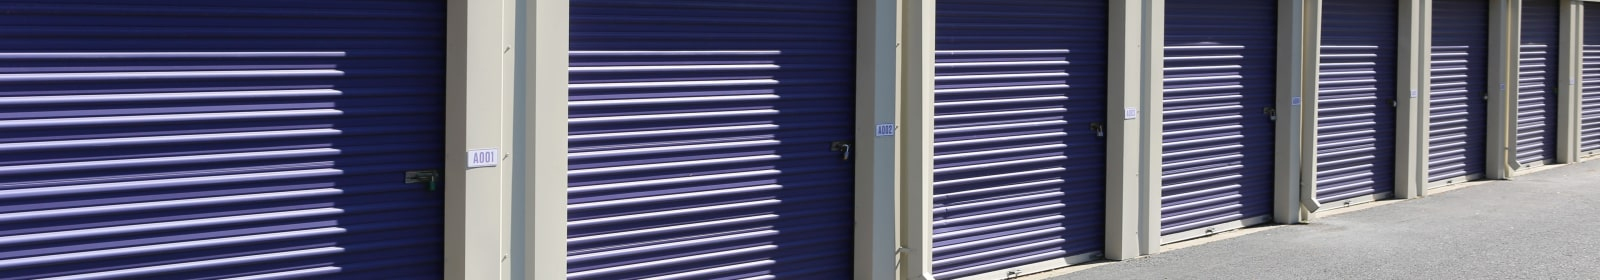 StoreSmart Self-Storage solutions in Durham, North Carolina